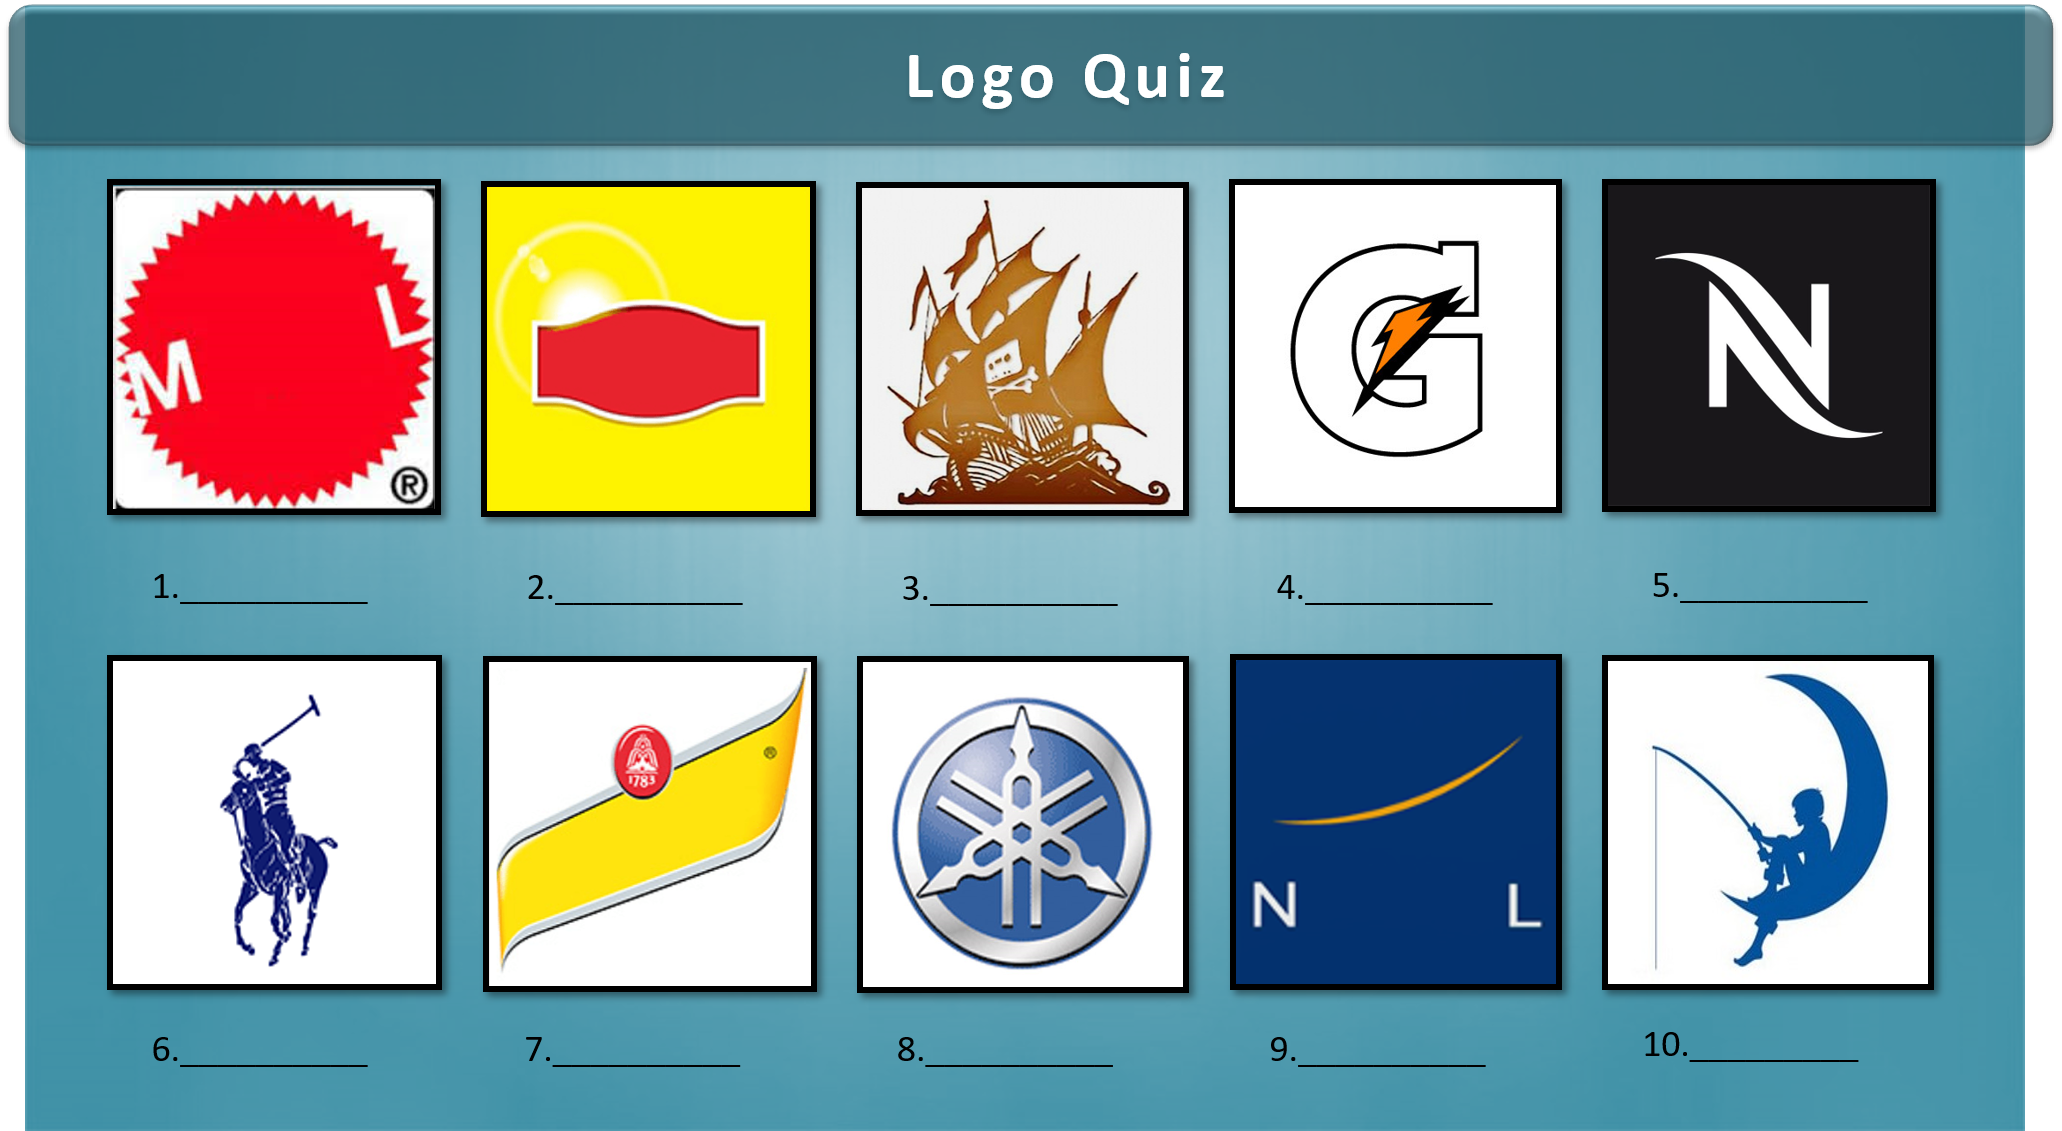 Name the famous company from these images for you're next